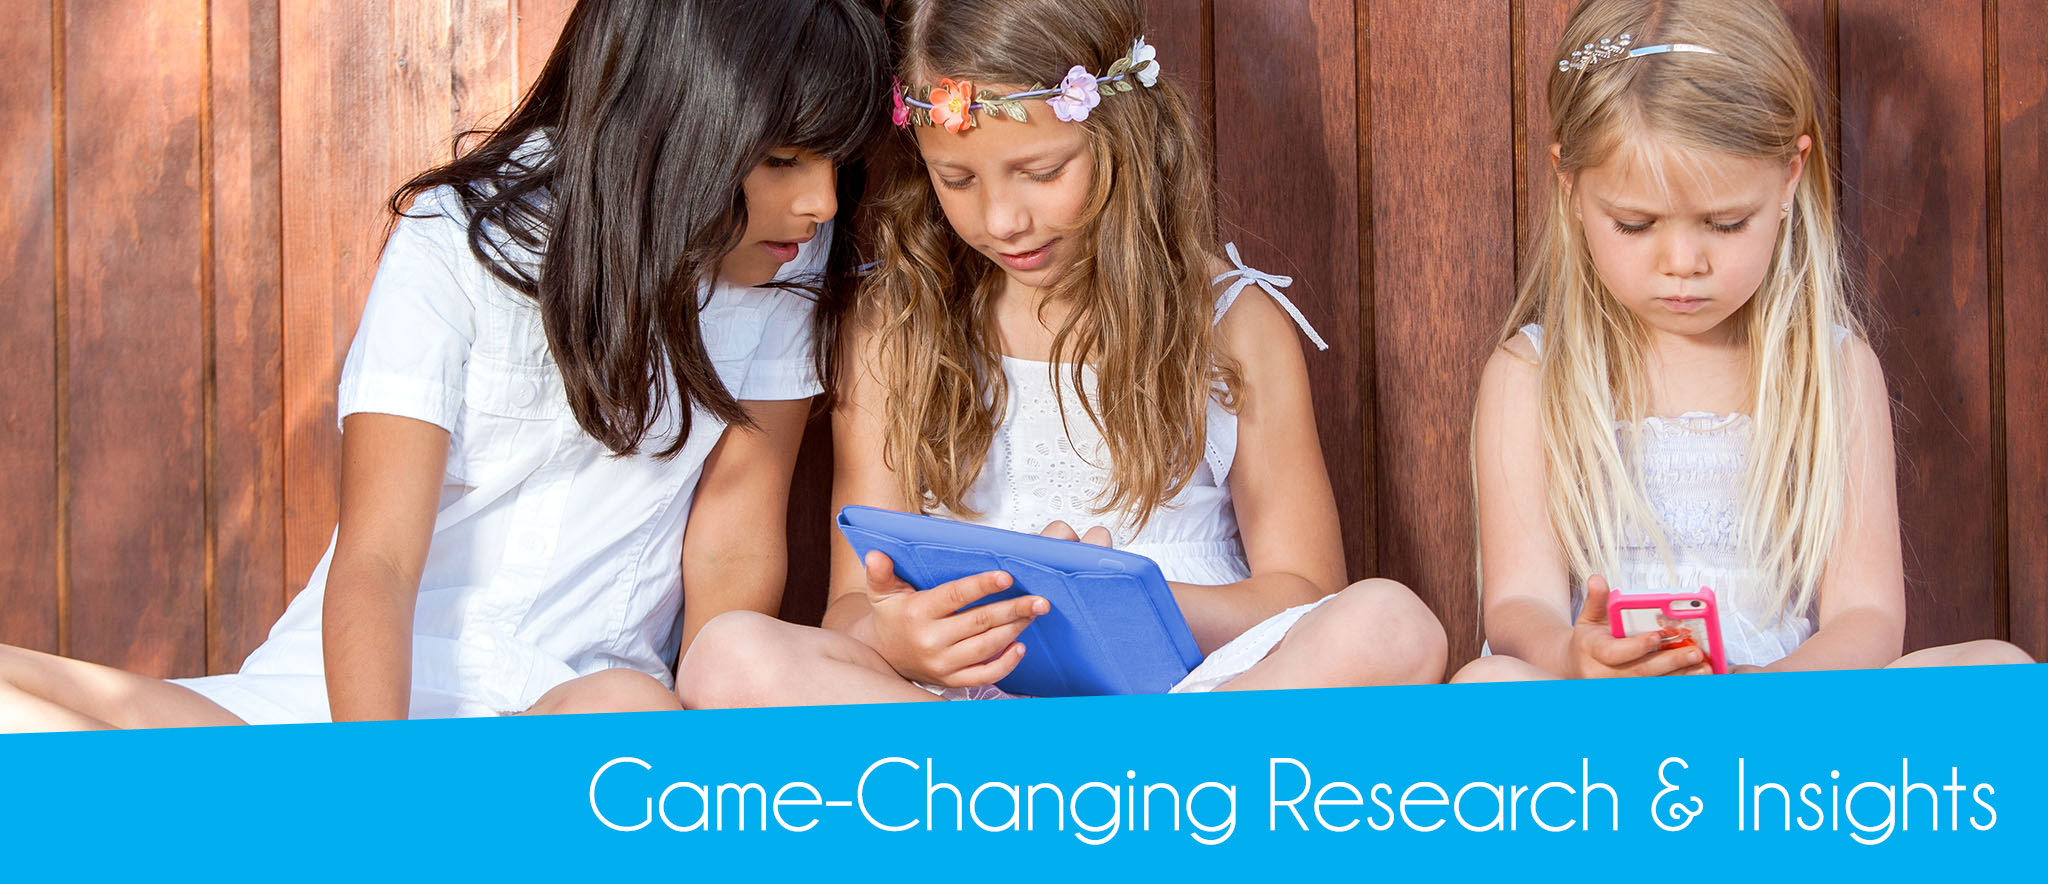 Game-Changing Research & Insights